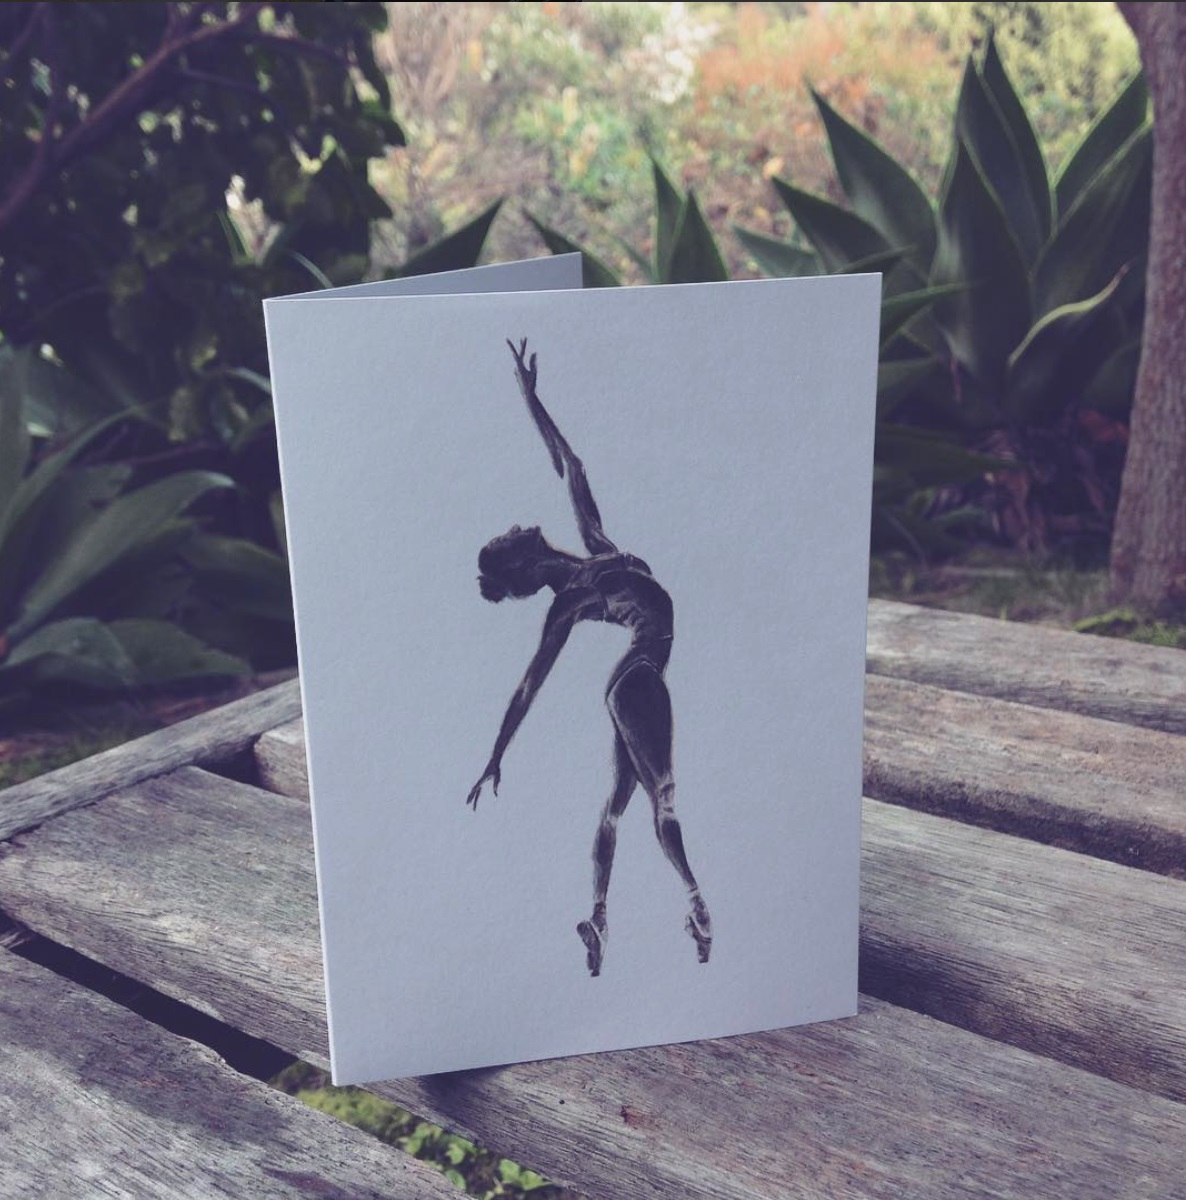 Ballet dancer greeting card by Olivia Holland. Artwork painted and printed on Waiheke Island.